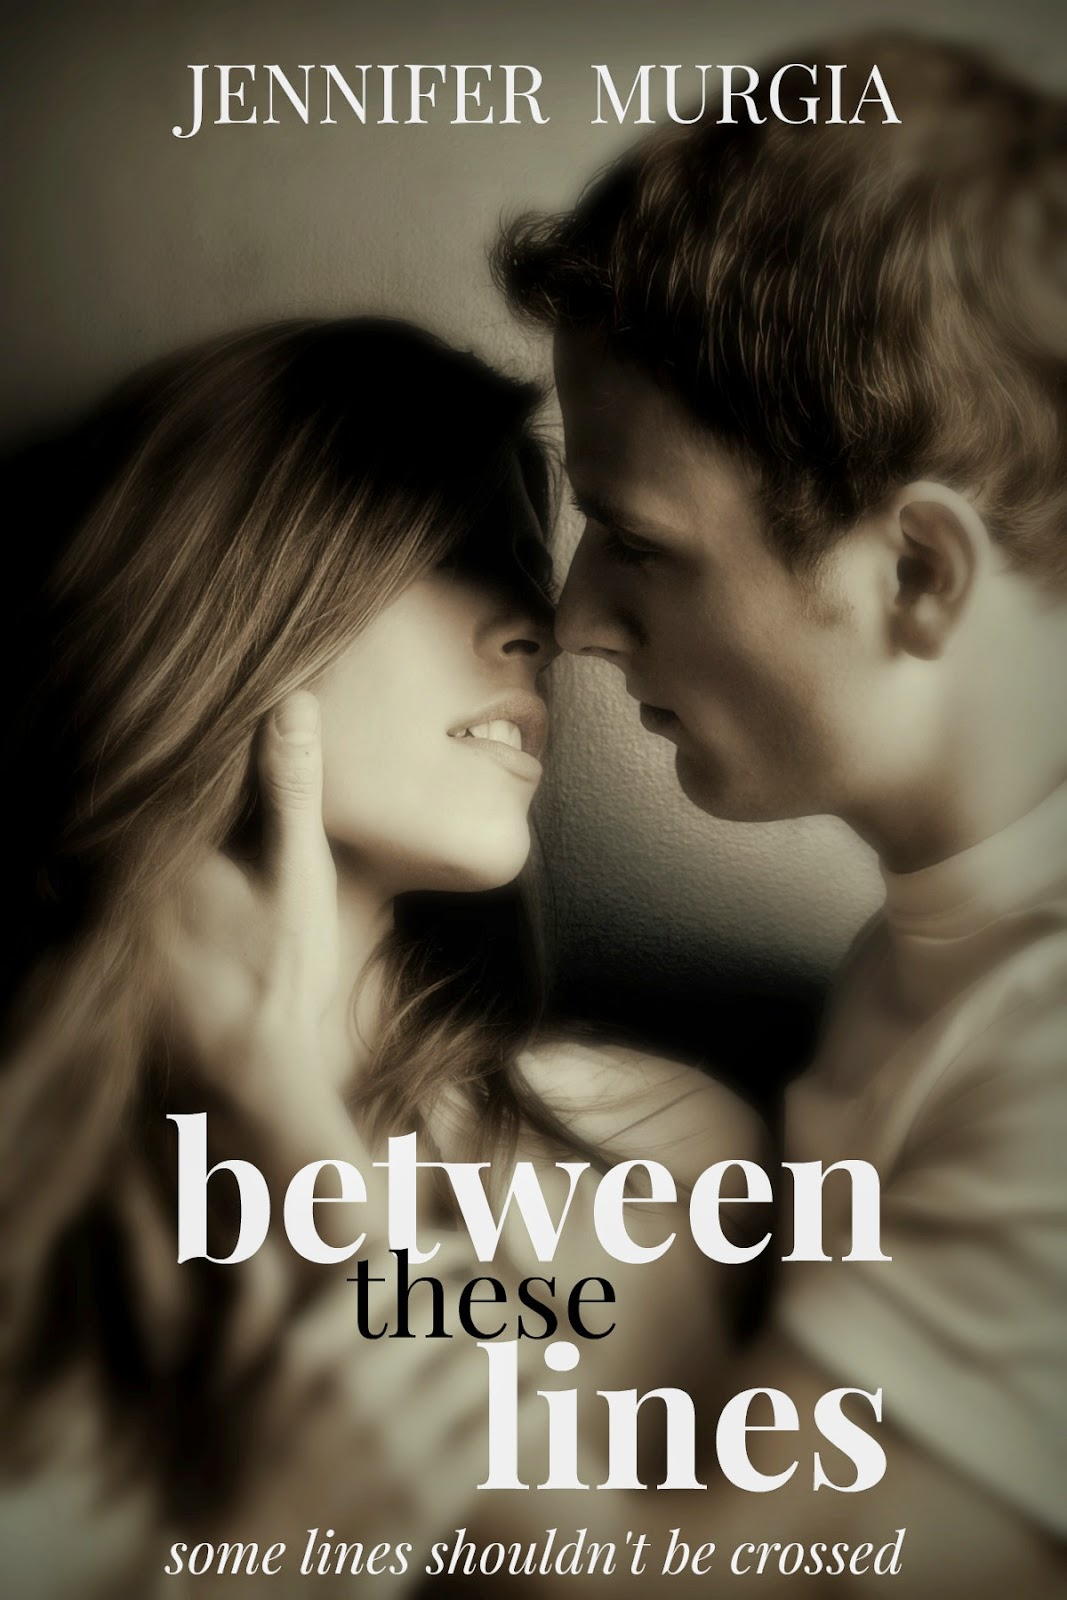 BETWEEN THESE LINES is only .99 cents!